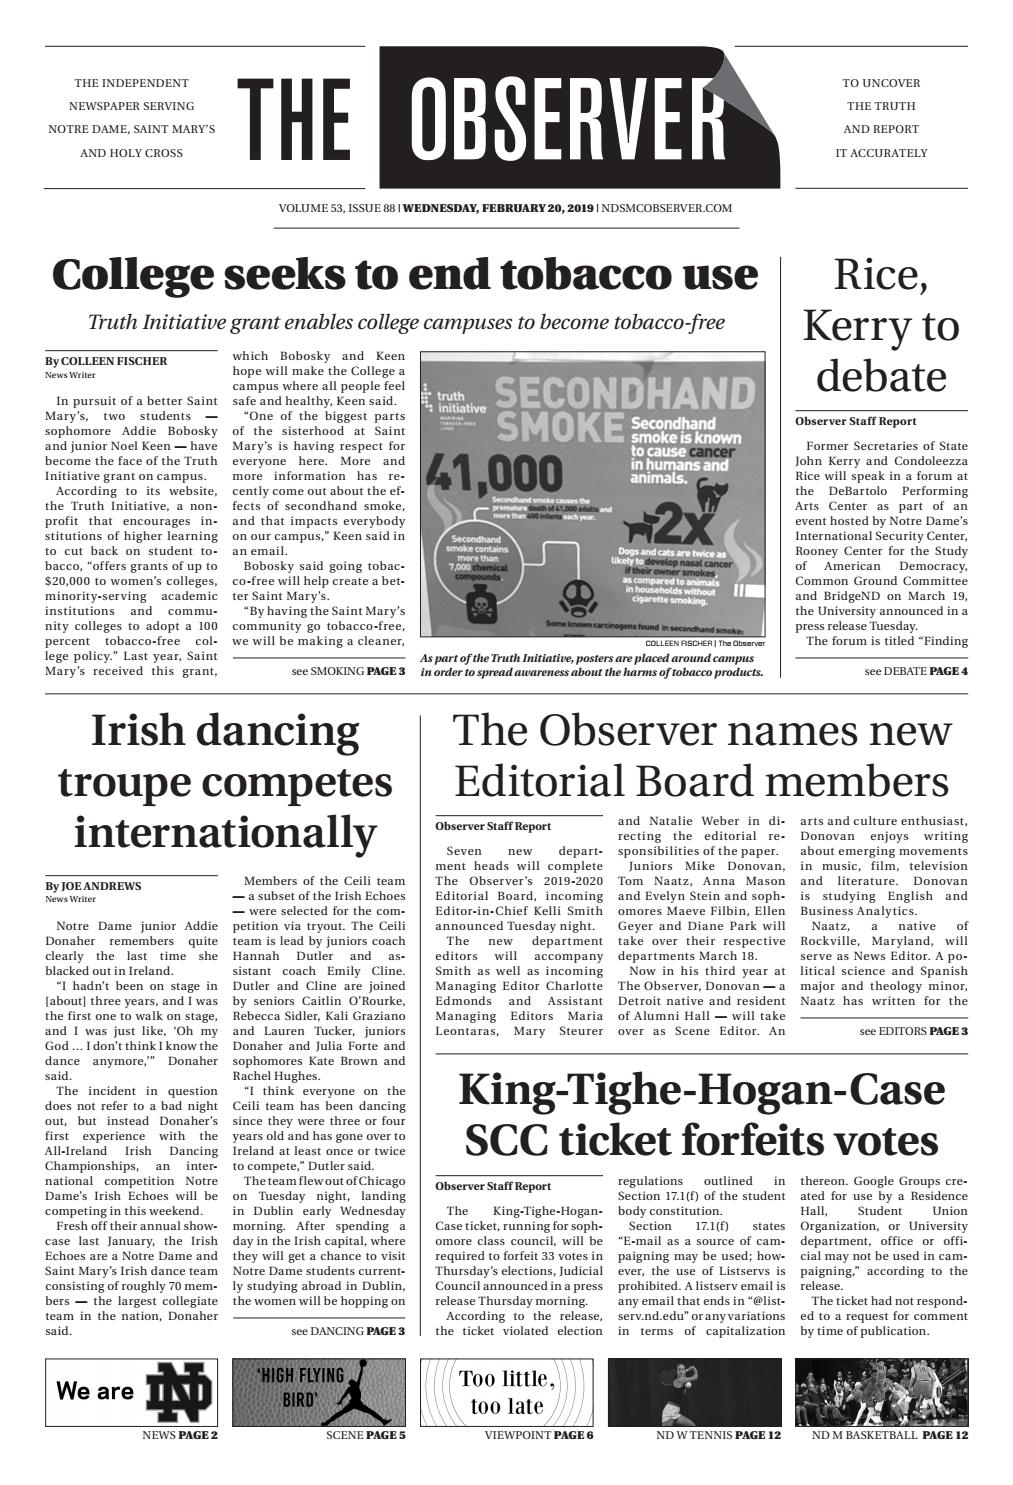 Print Edition of The Observer for Wednesday, February 20